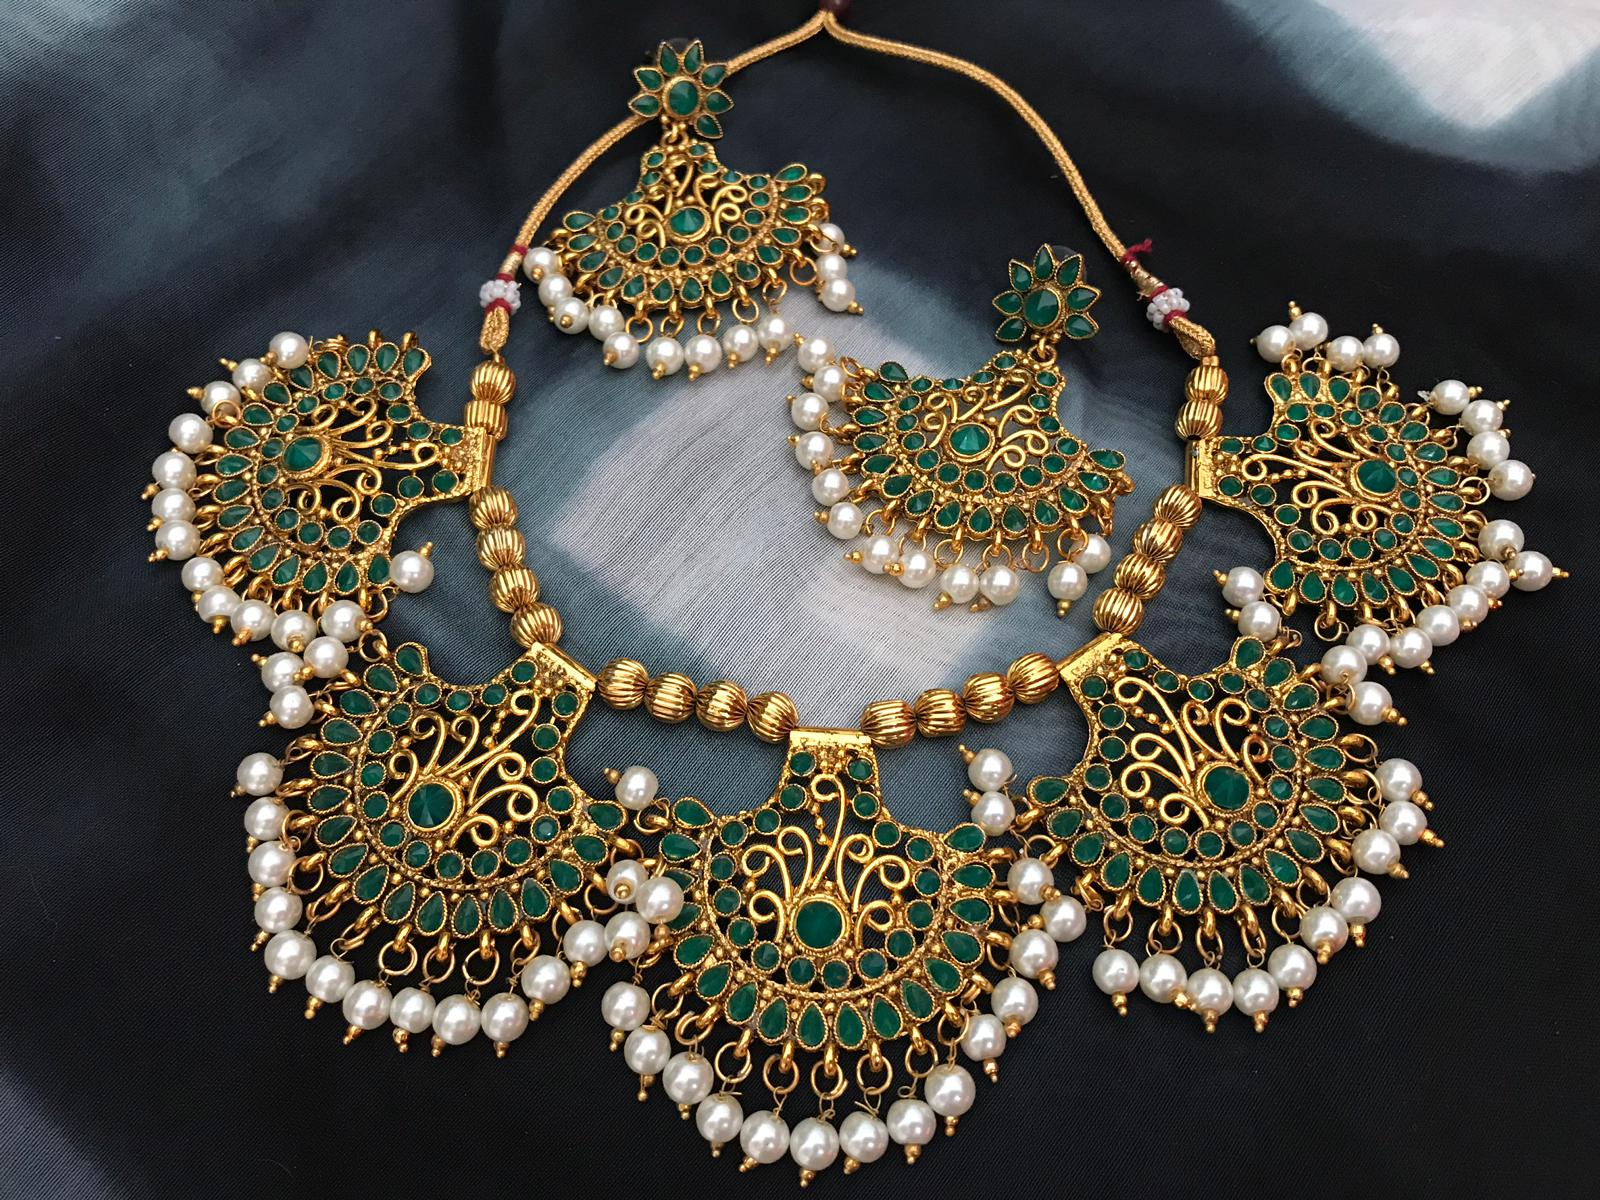 Green Stone Studded Pankhi Necklace Set With Metal Base & With Micron Gold Polish & Matching Earrings